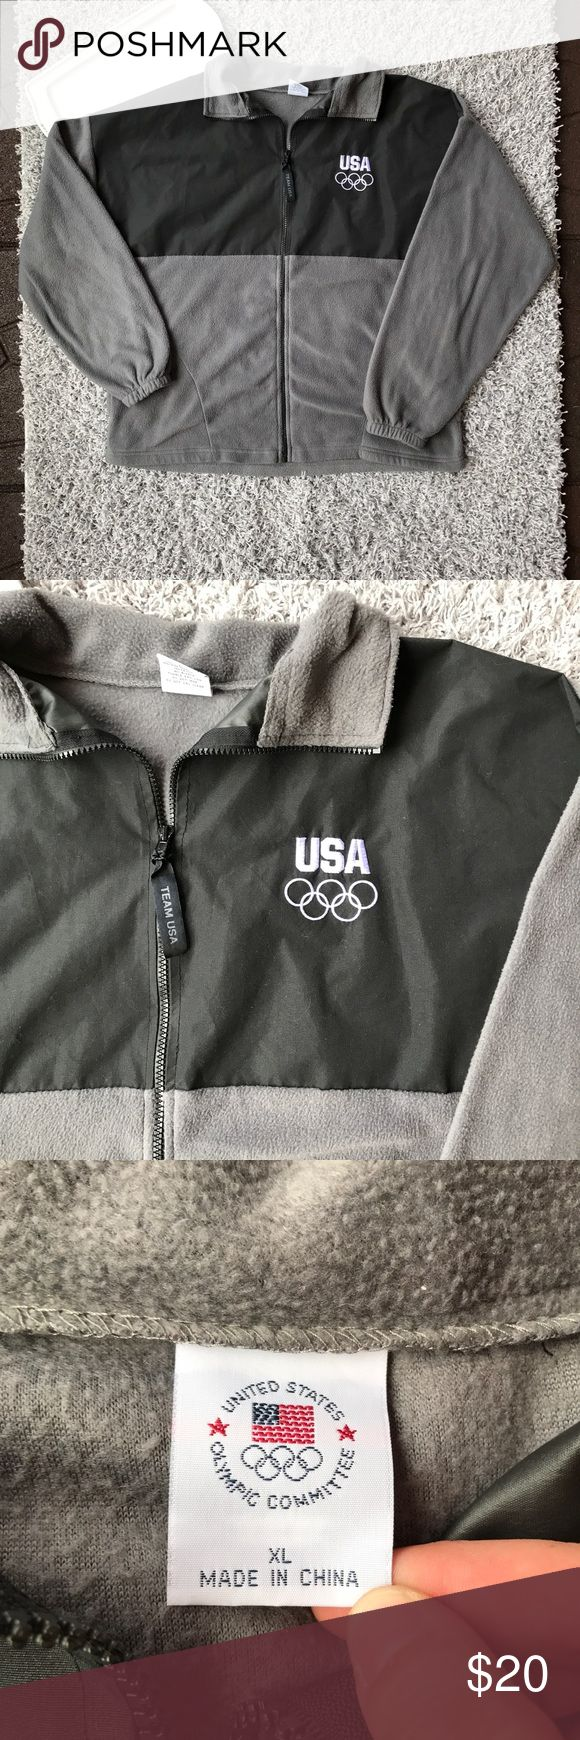 US Olympics committee extra large fleece jacket This fleece jacket is in excellent condition and has no flaws. It is a size extra large and measurements are shown in pictures. Feel free to bundle and save! United States Olympics committee Jackets & Coats Performance Jackets